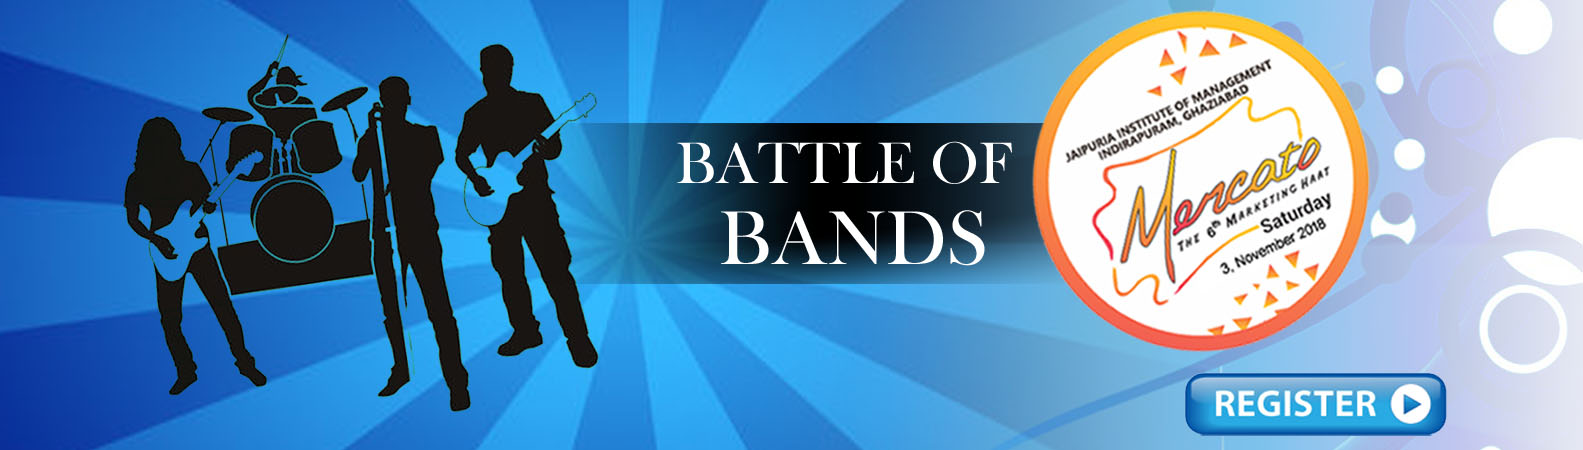 Battle-of-Bands